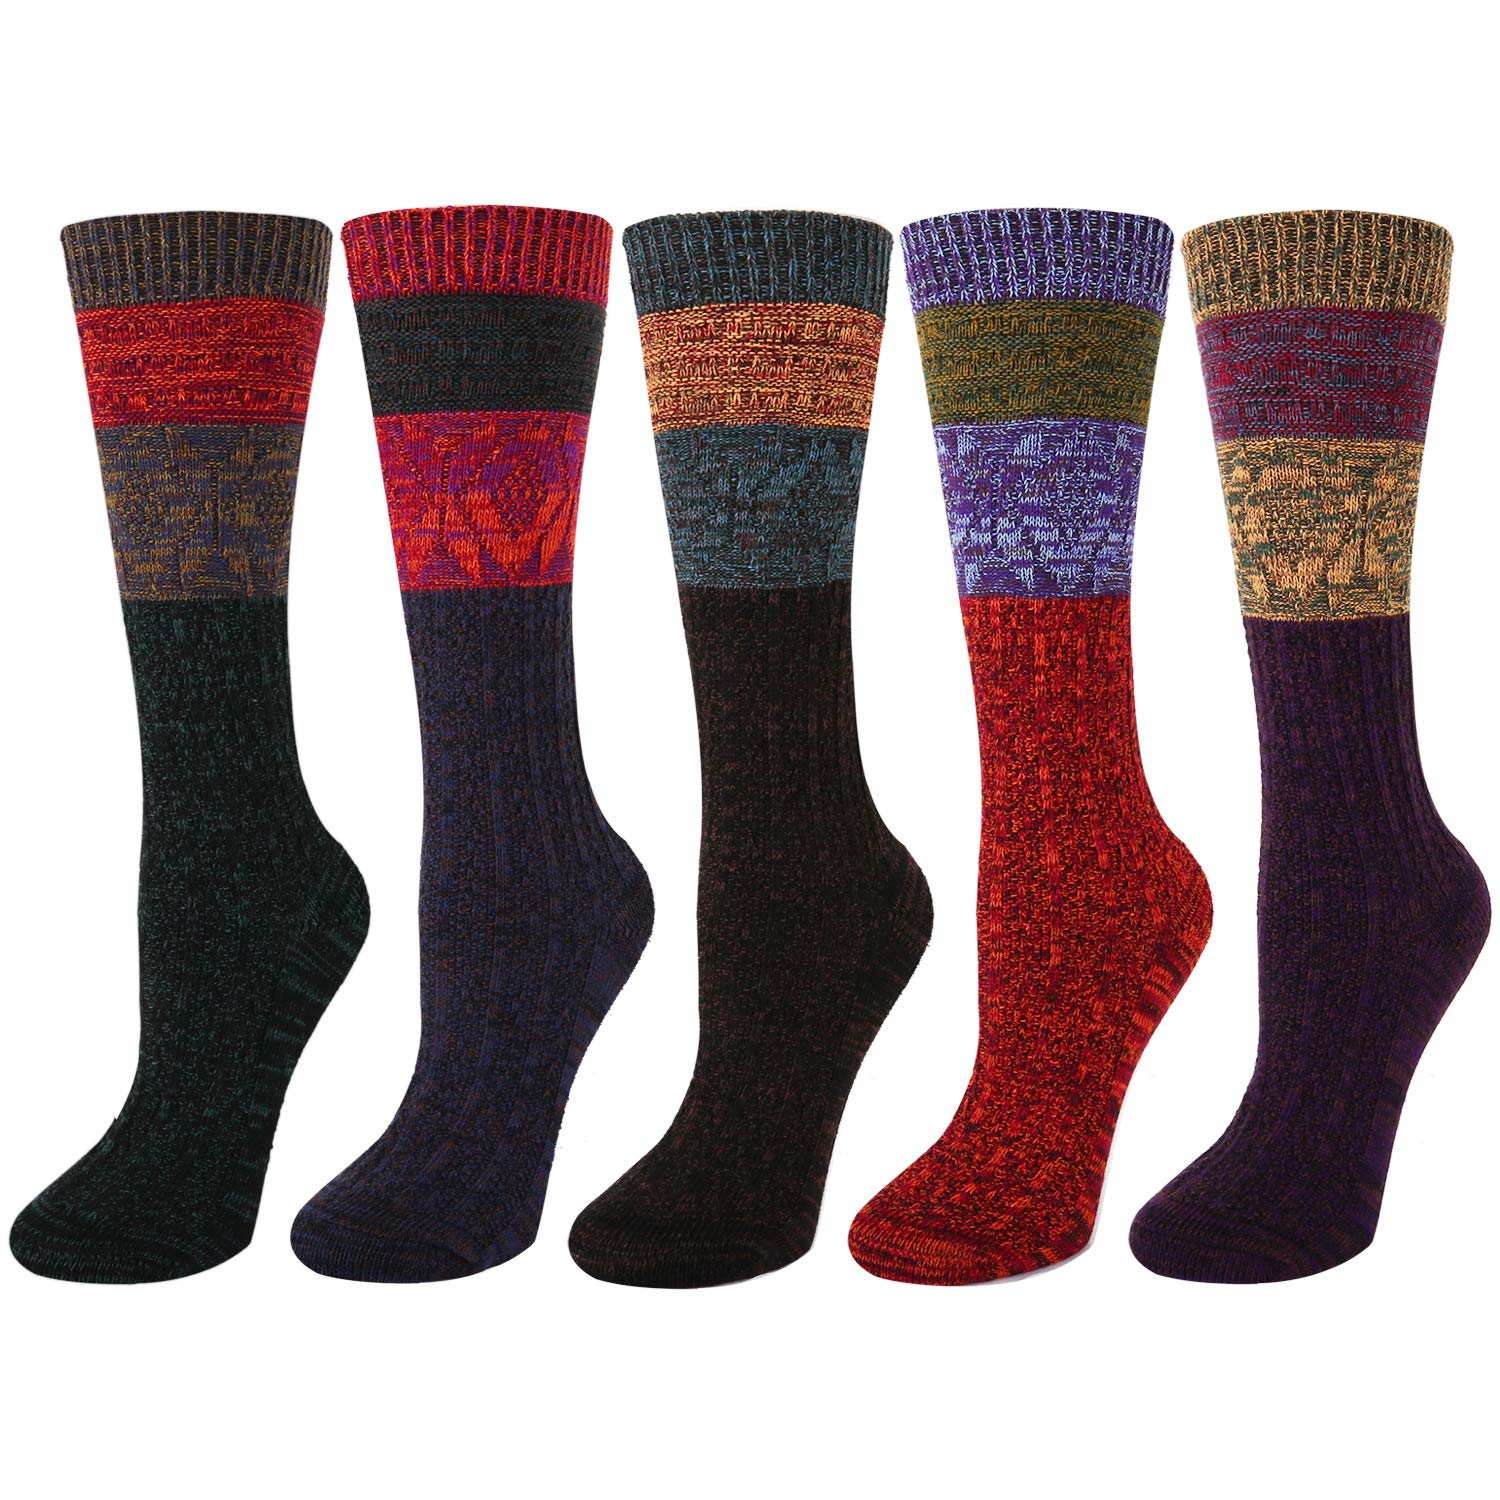 5 Pack Womens Soft Warm Thick Knit Wool Cozy Crew Socks Vintage Colorful Casual Fall Winter Quarter Socks